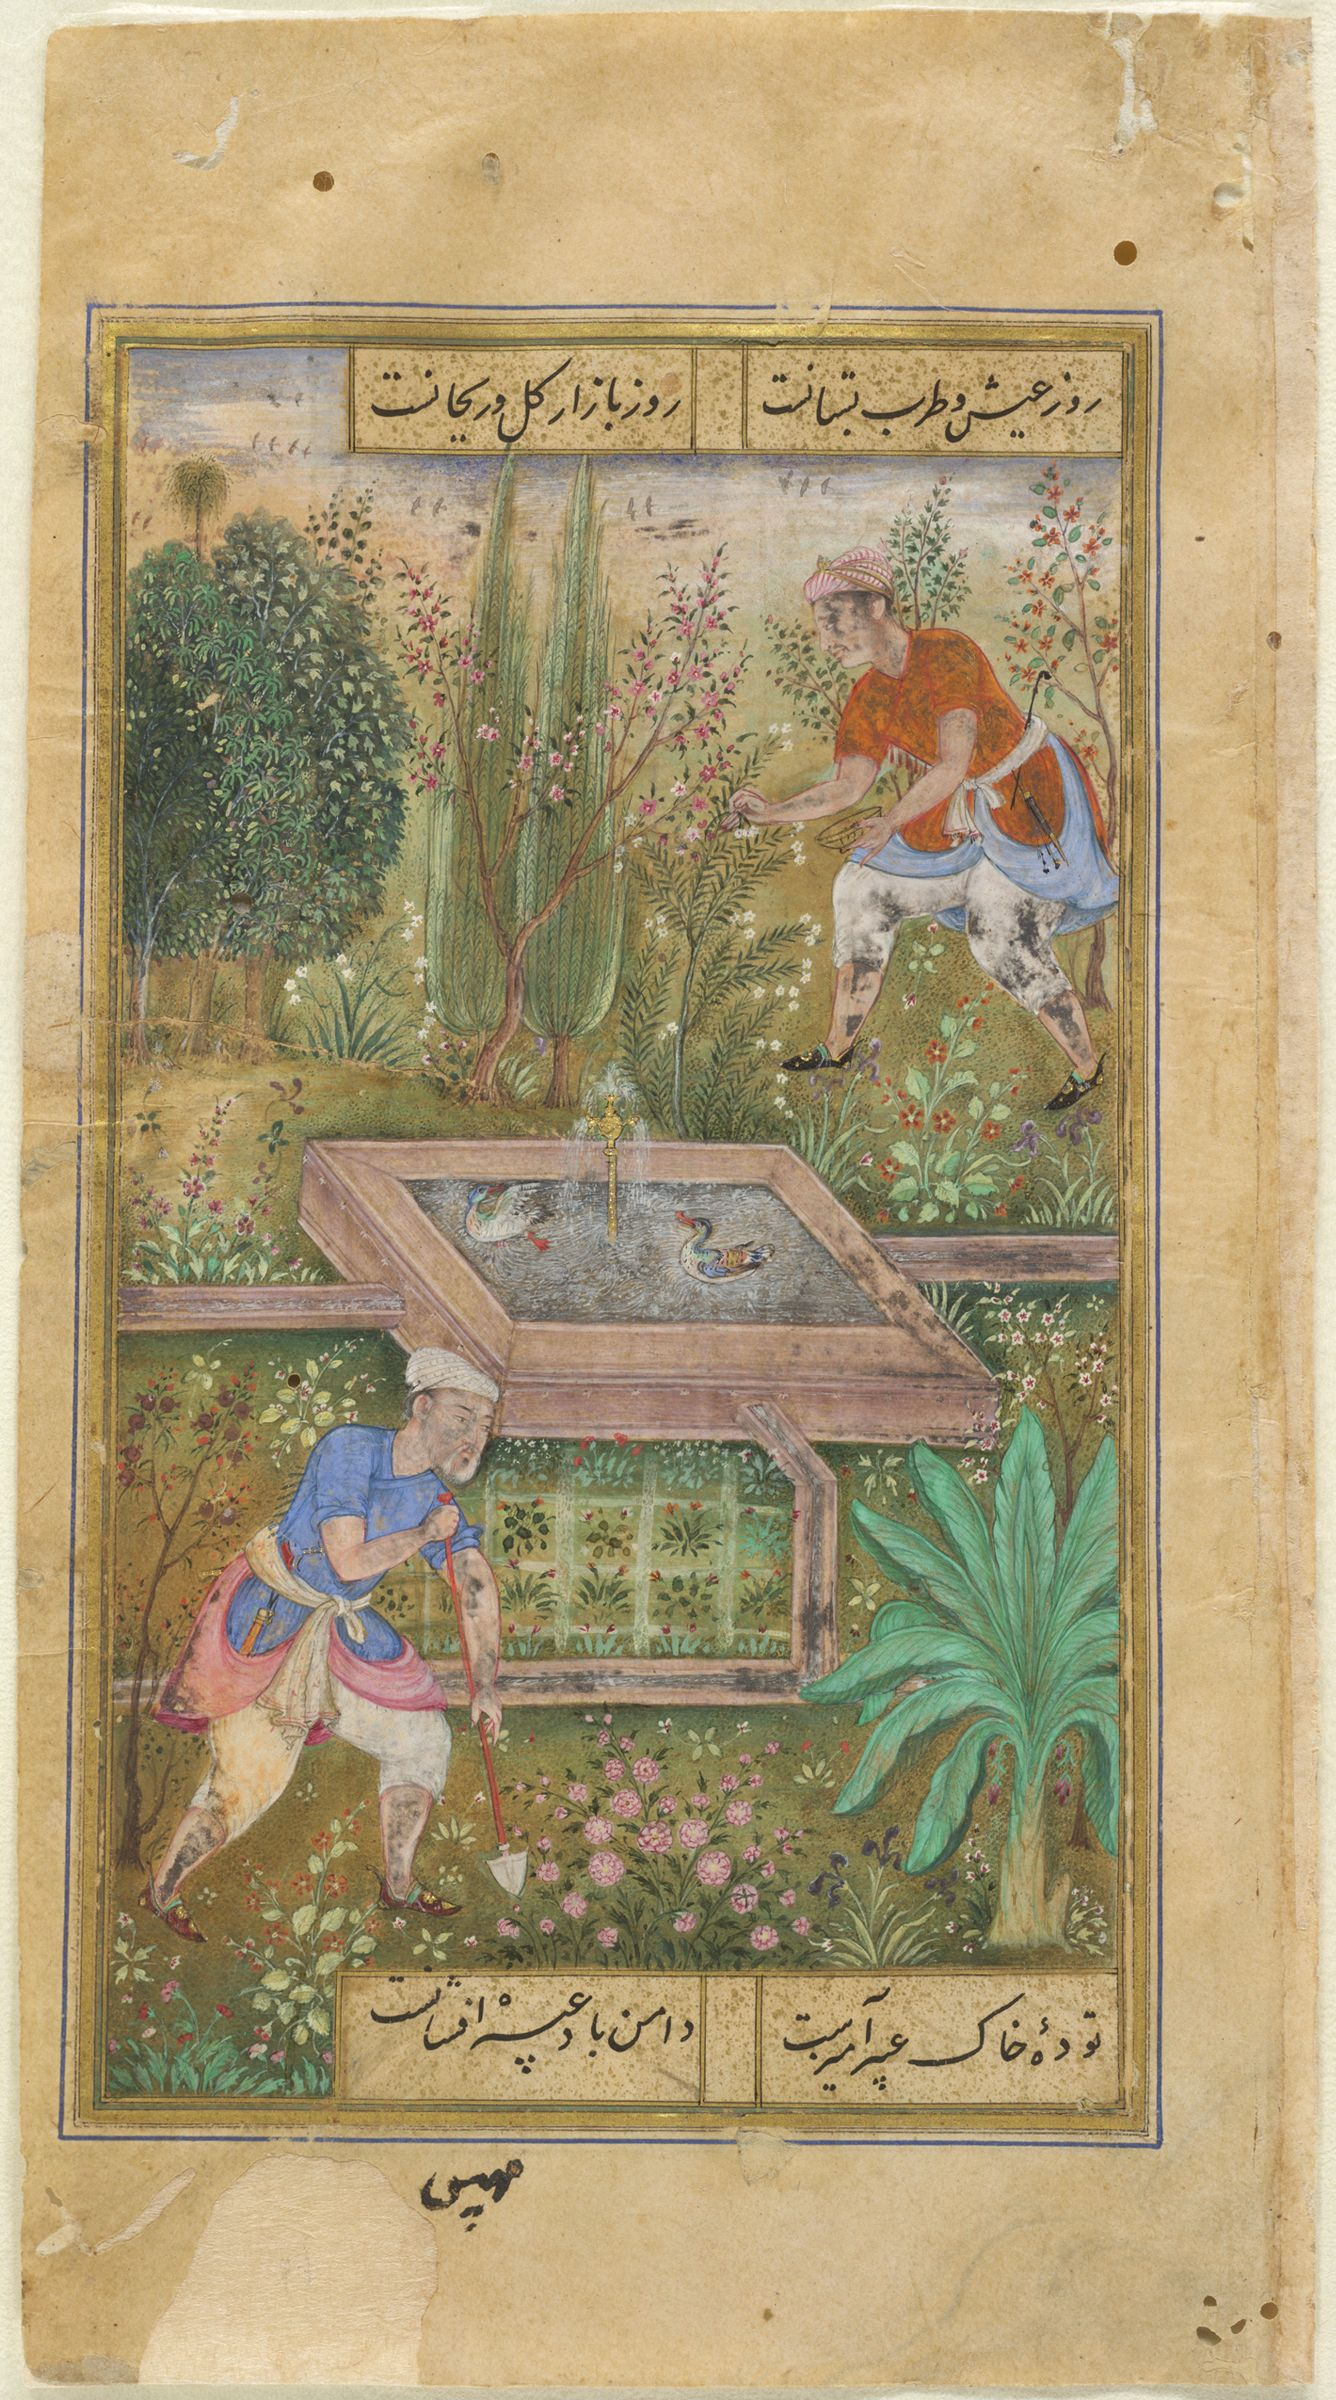 It's The Day For The Garden (Painting, Recto; Text, Verso), Folio 173 From A Manuscript Of The Divan (Collection Of Works) Of Anvari